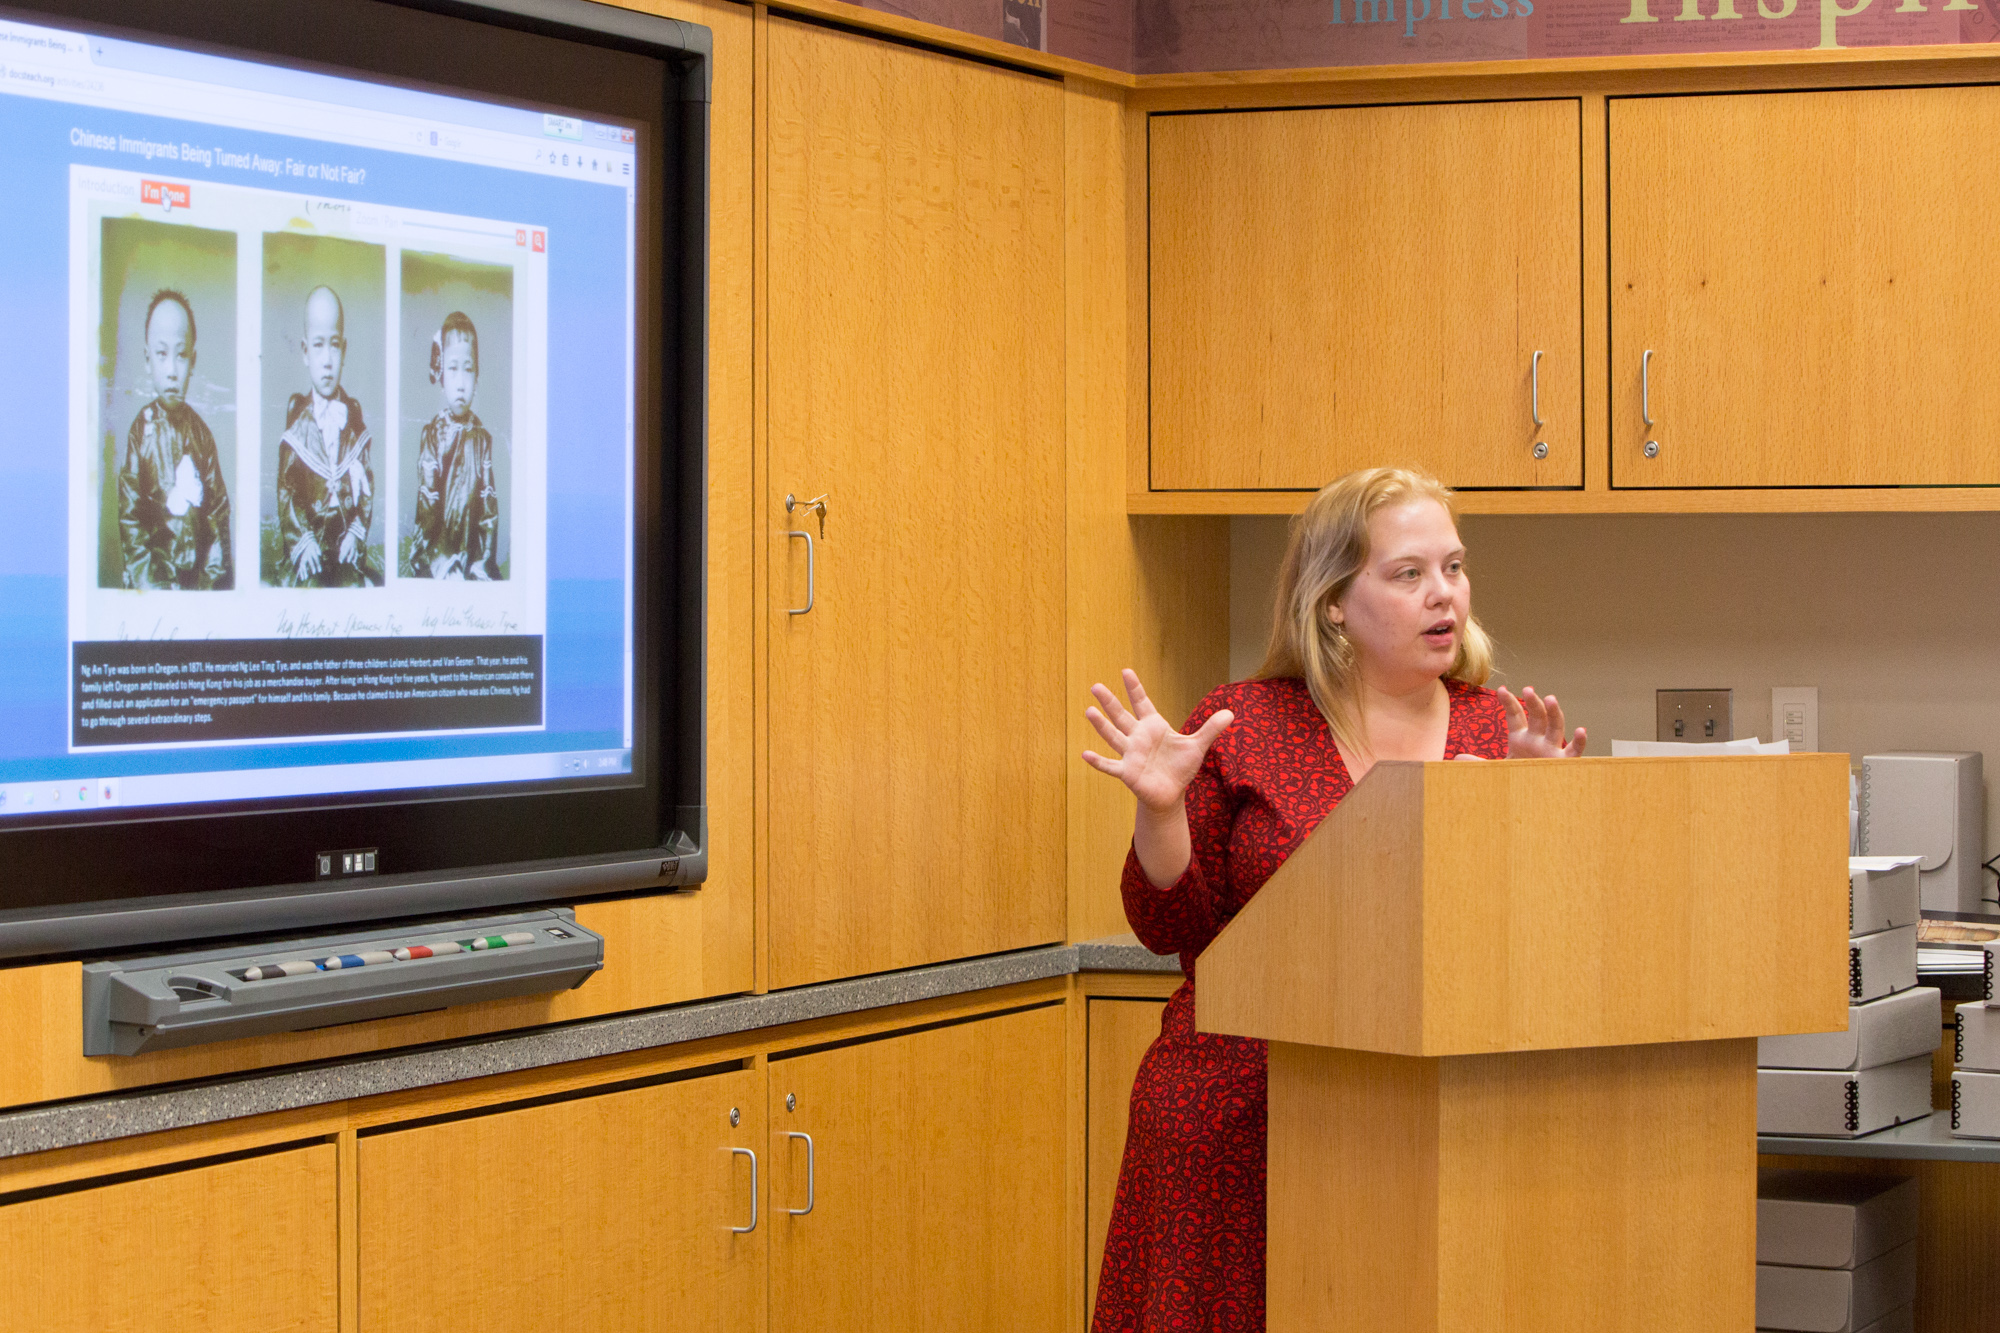 A teacher presents the online DocsTeach activity she created using National Archives documents.